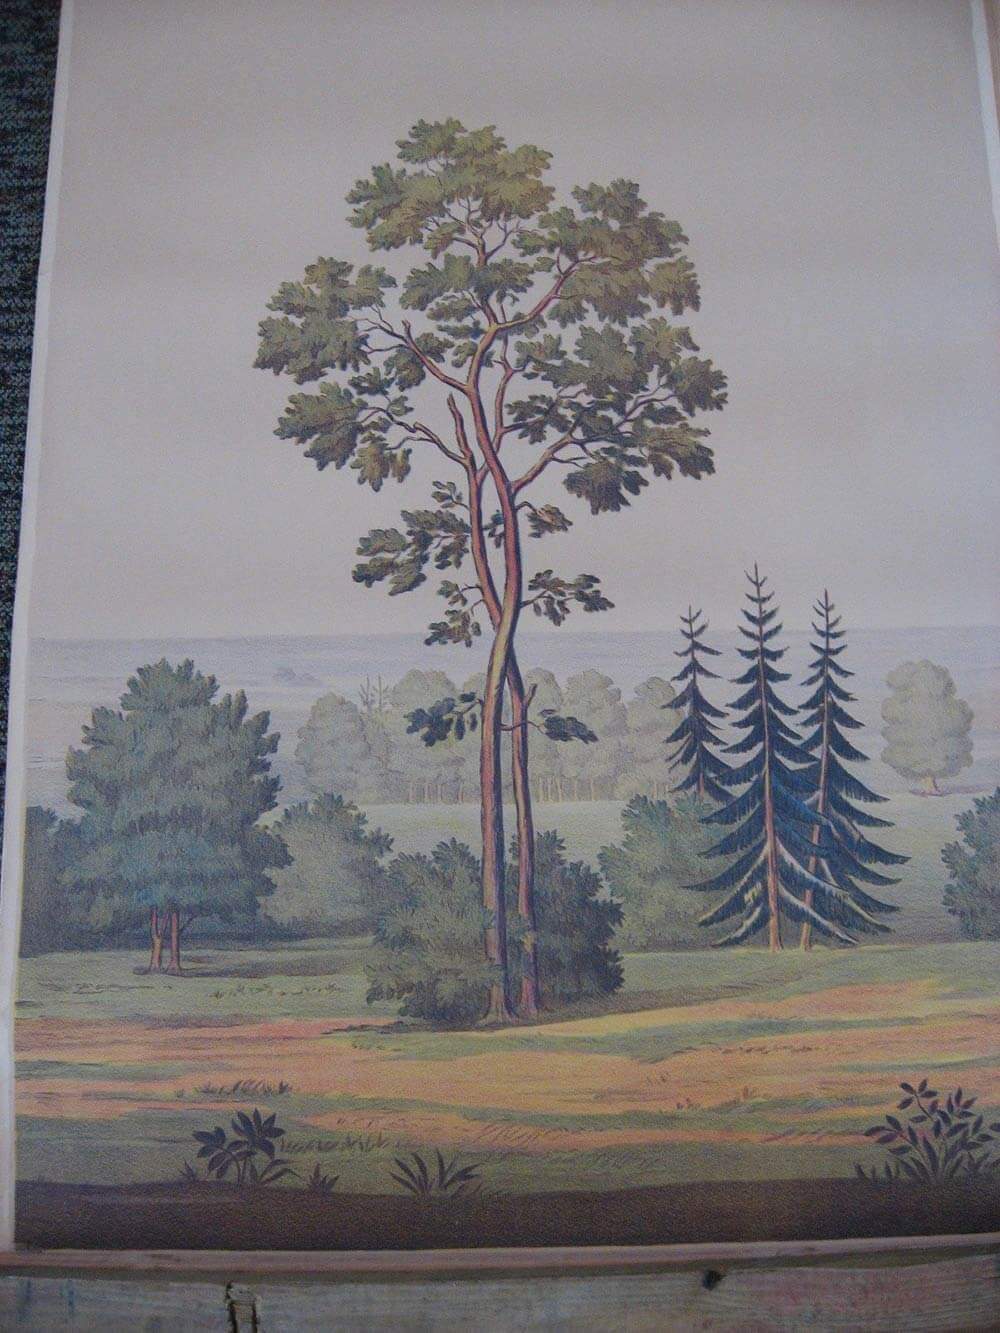 Wall Paper Murals 28+ [ wall paper murals for sale ] | wallpaper mural forest ebay